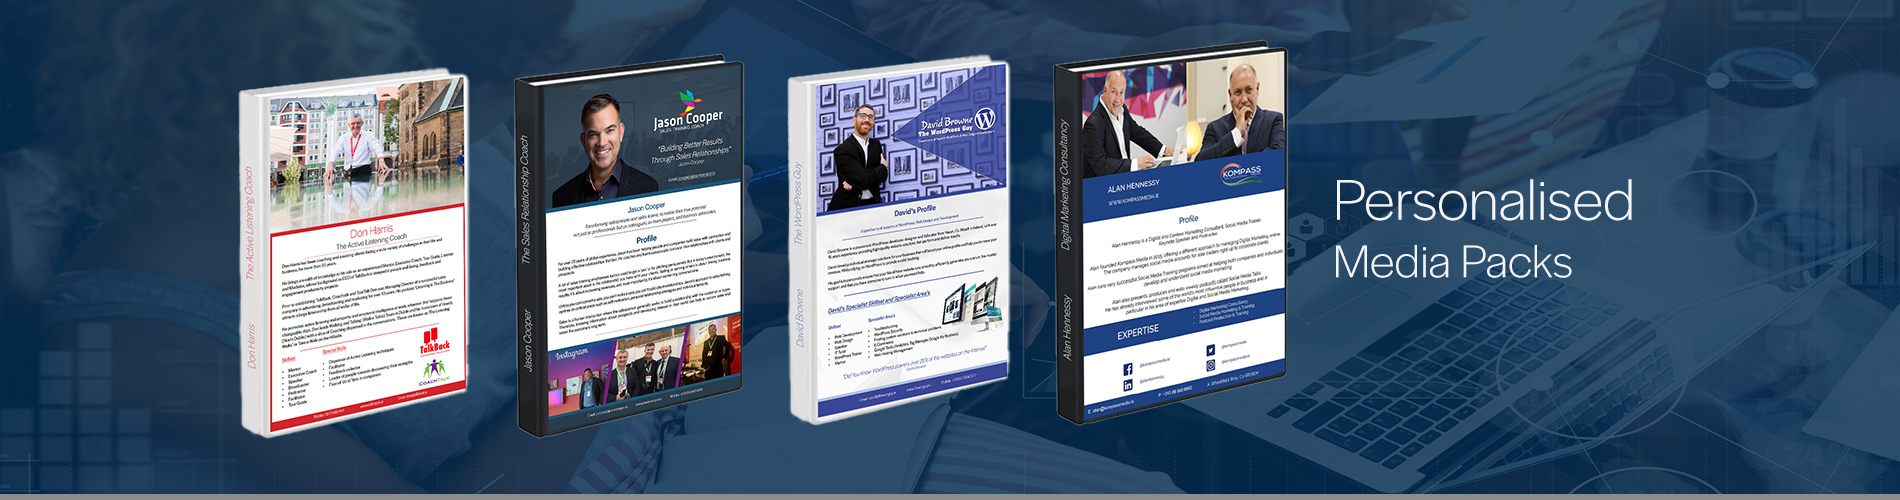 Personalised Media Packs created and developed by Kompass Media. Contact us for more information